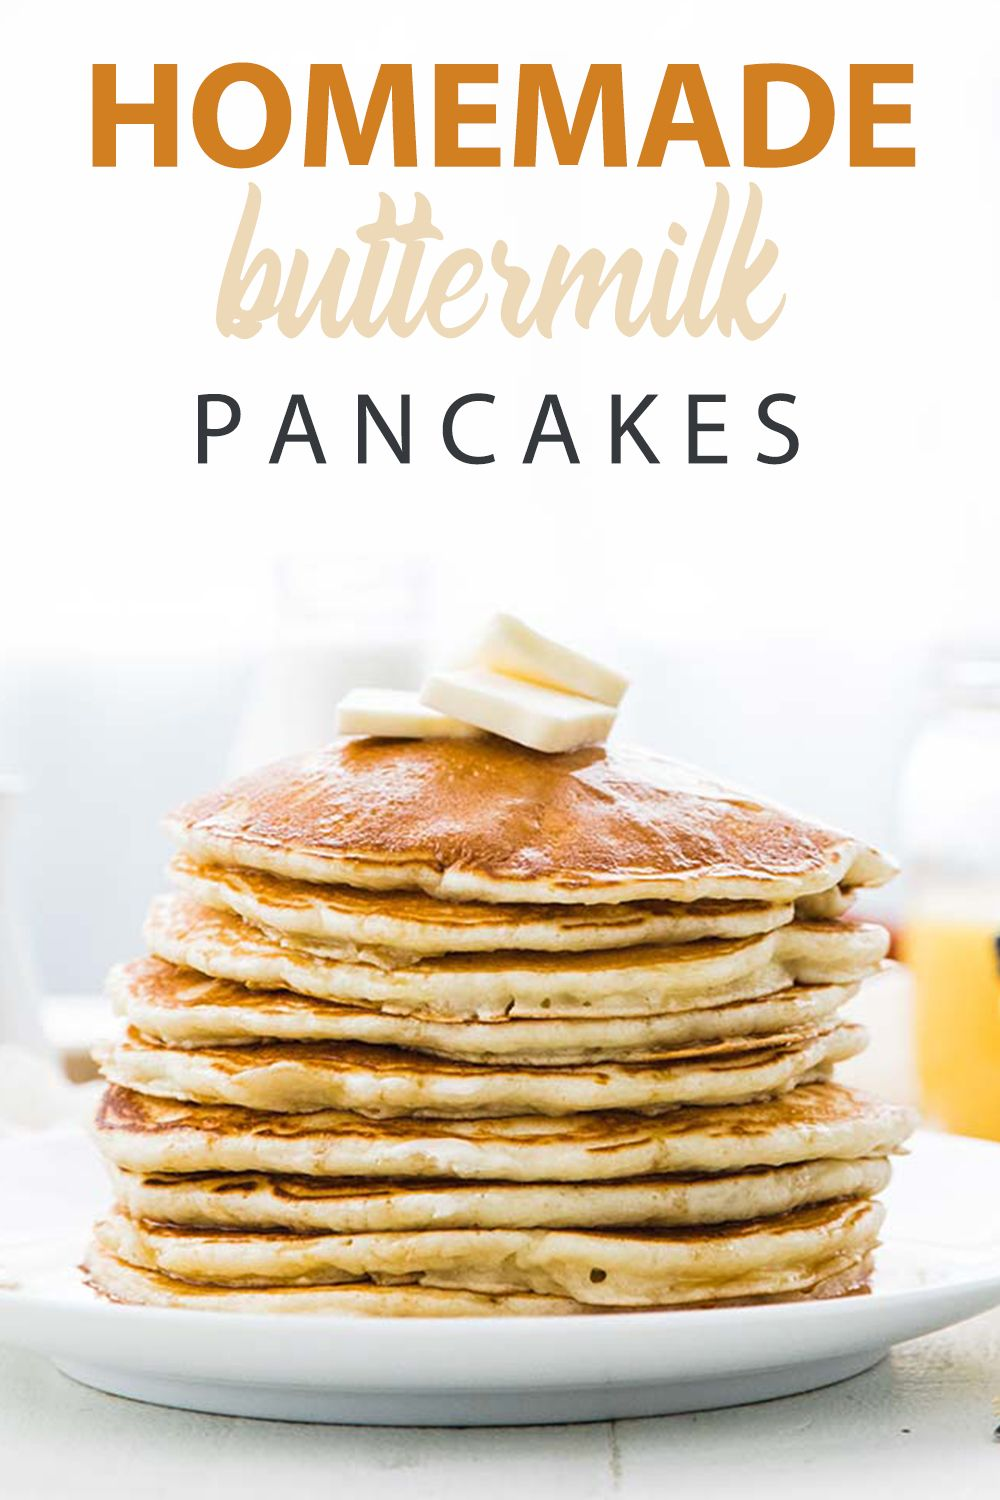 Homemade Buttermilk Pancakes Recipe Recipe Homemade Buttermilk Pancakes Pancake Recipe Buttermilk Buttermilk Pancakes